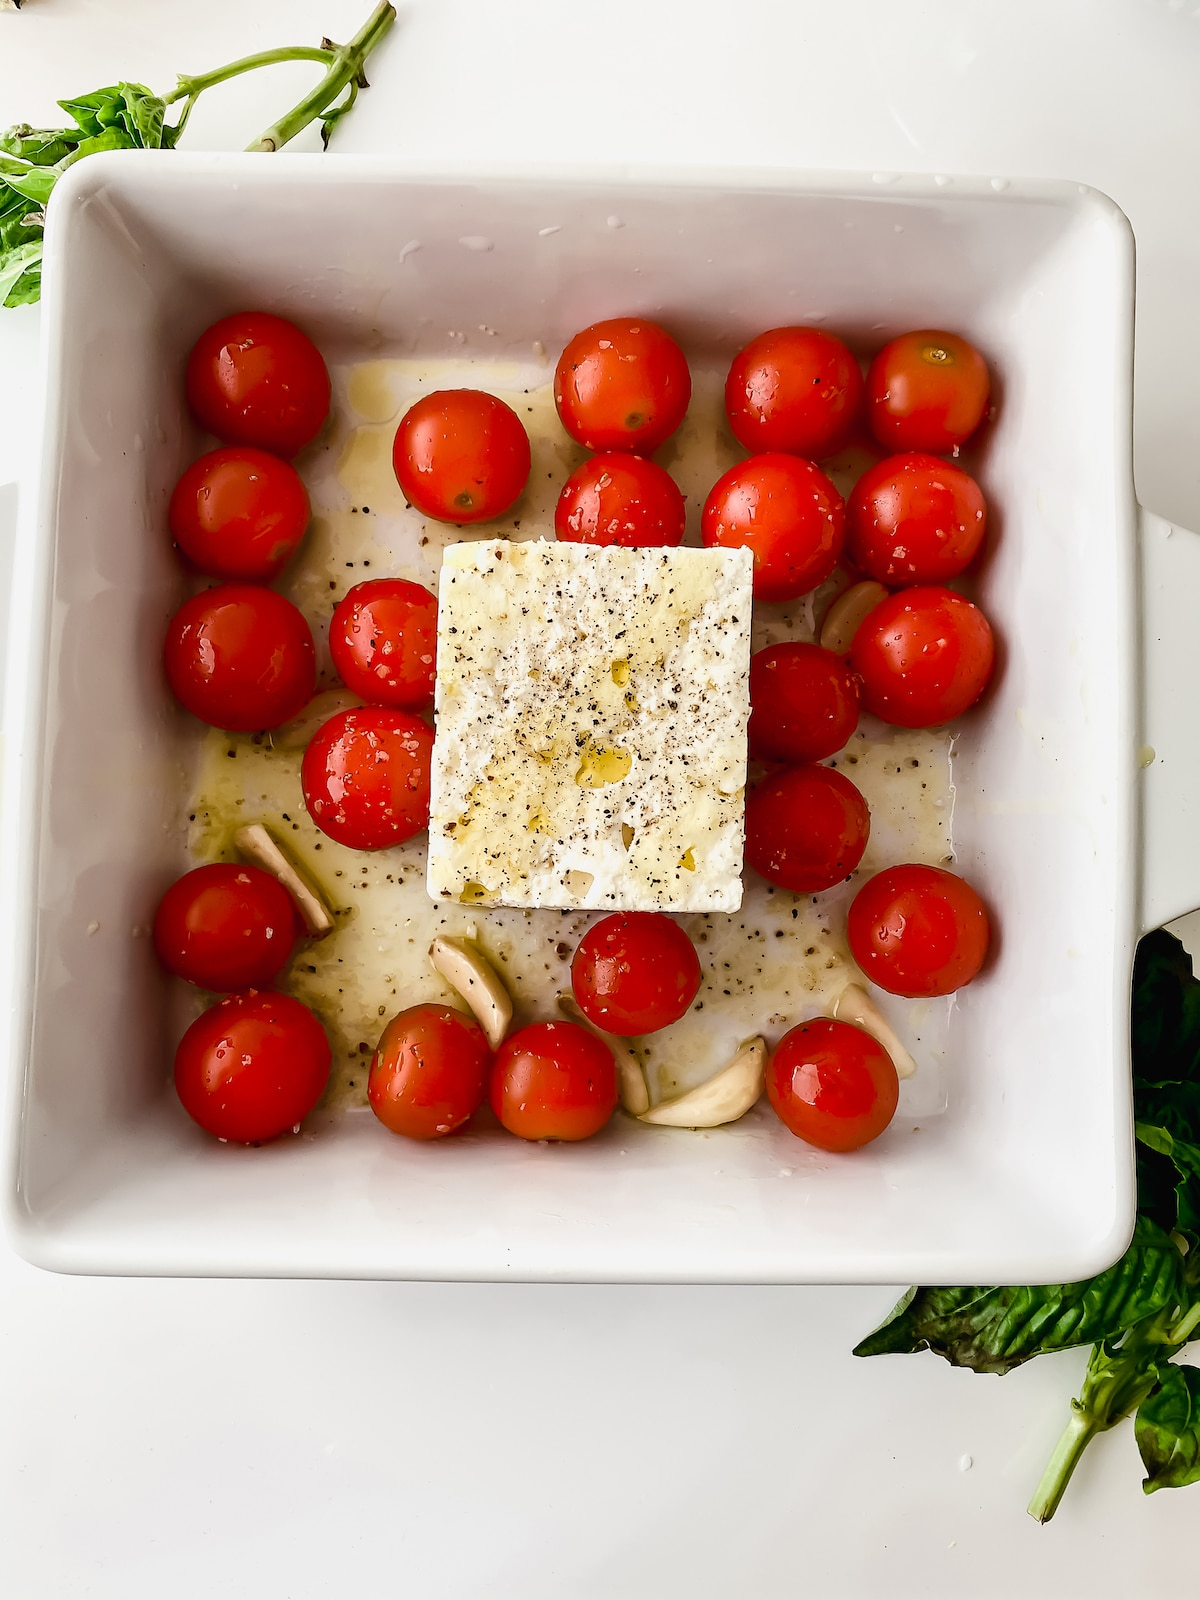 White baking dish with tomatoes and feta